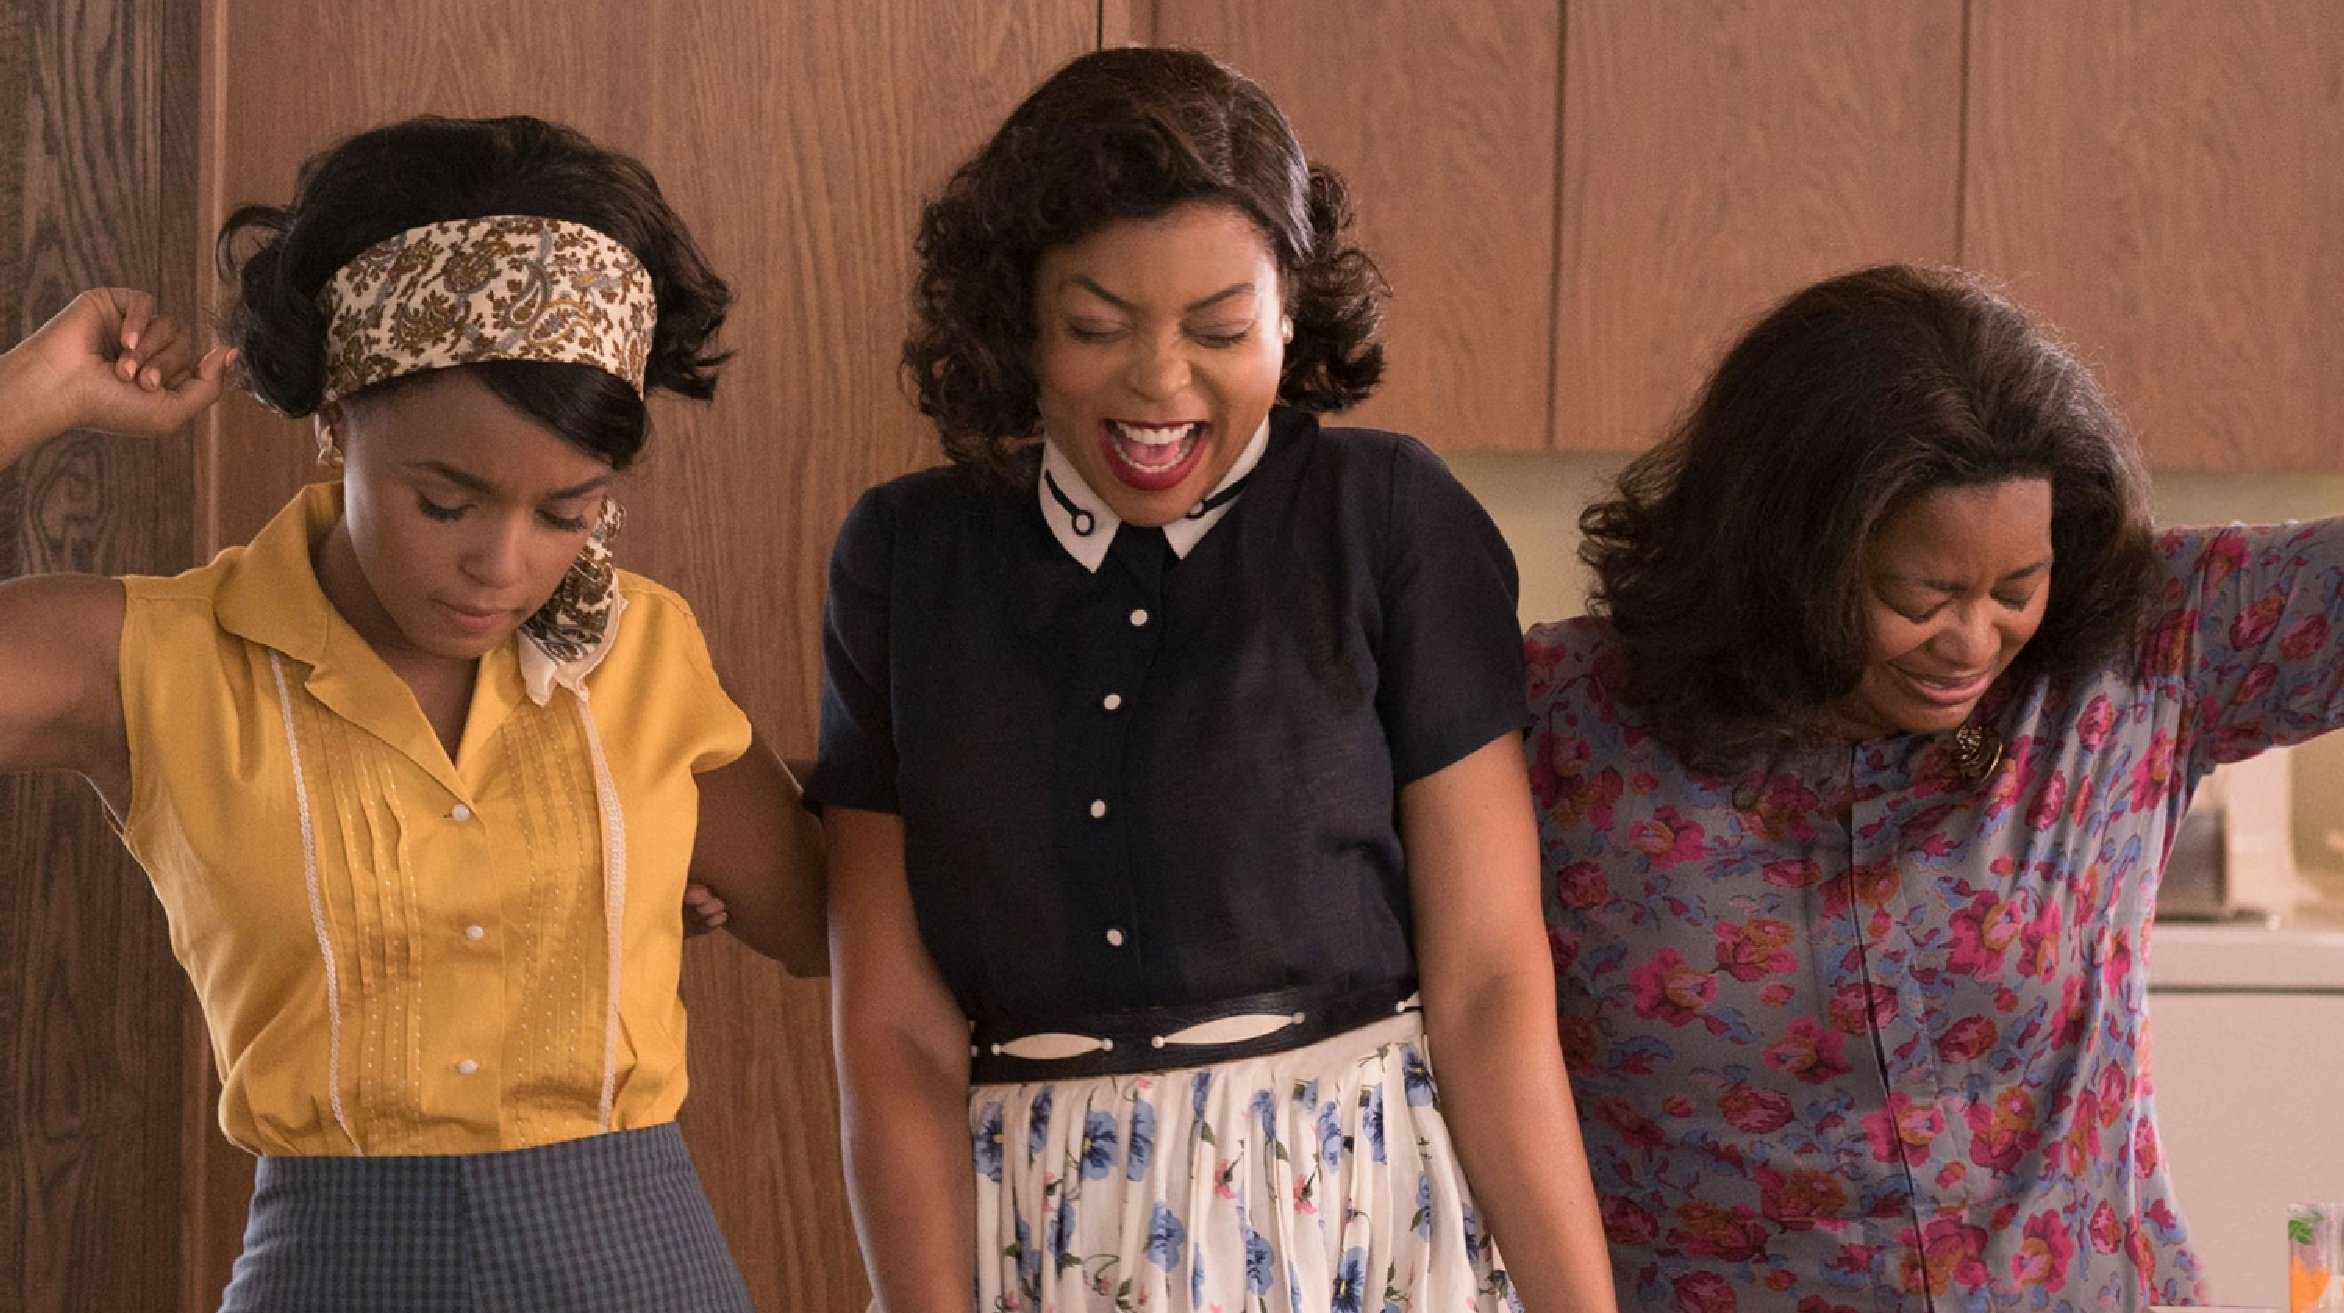 RMlogo The hidden theology of the new movie, Hidden Figures